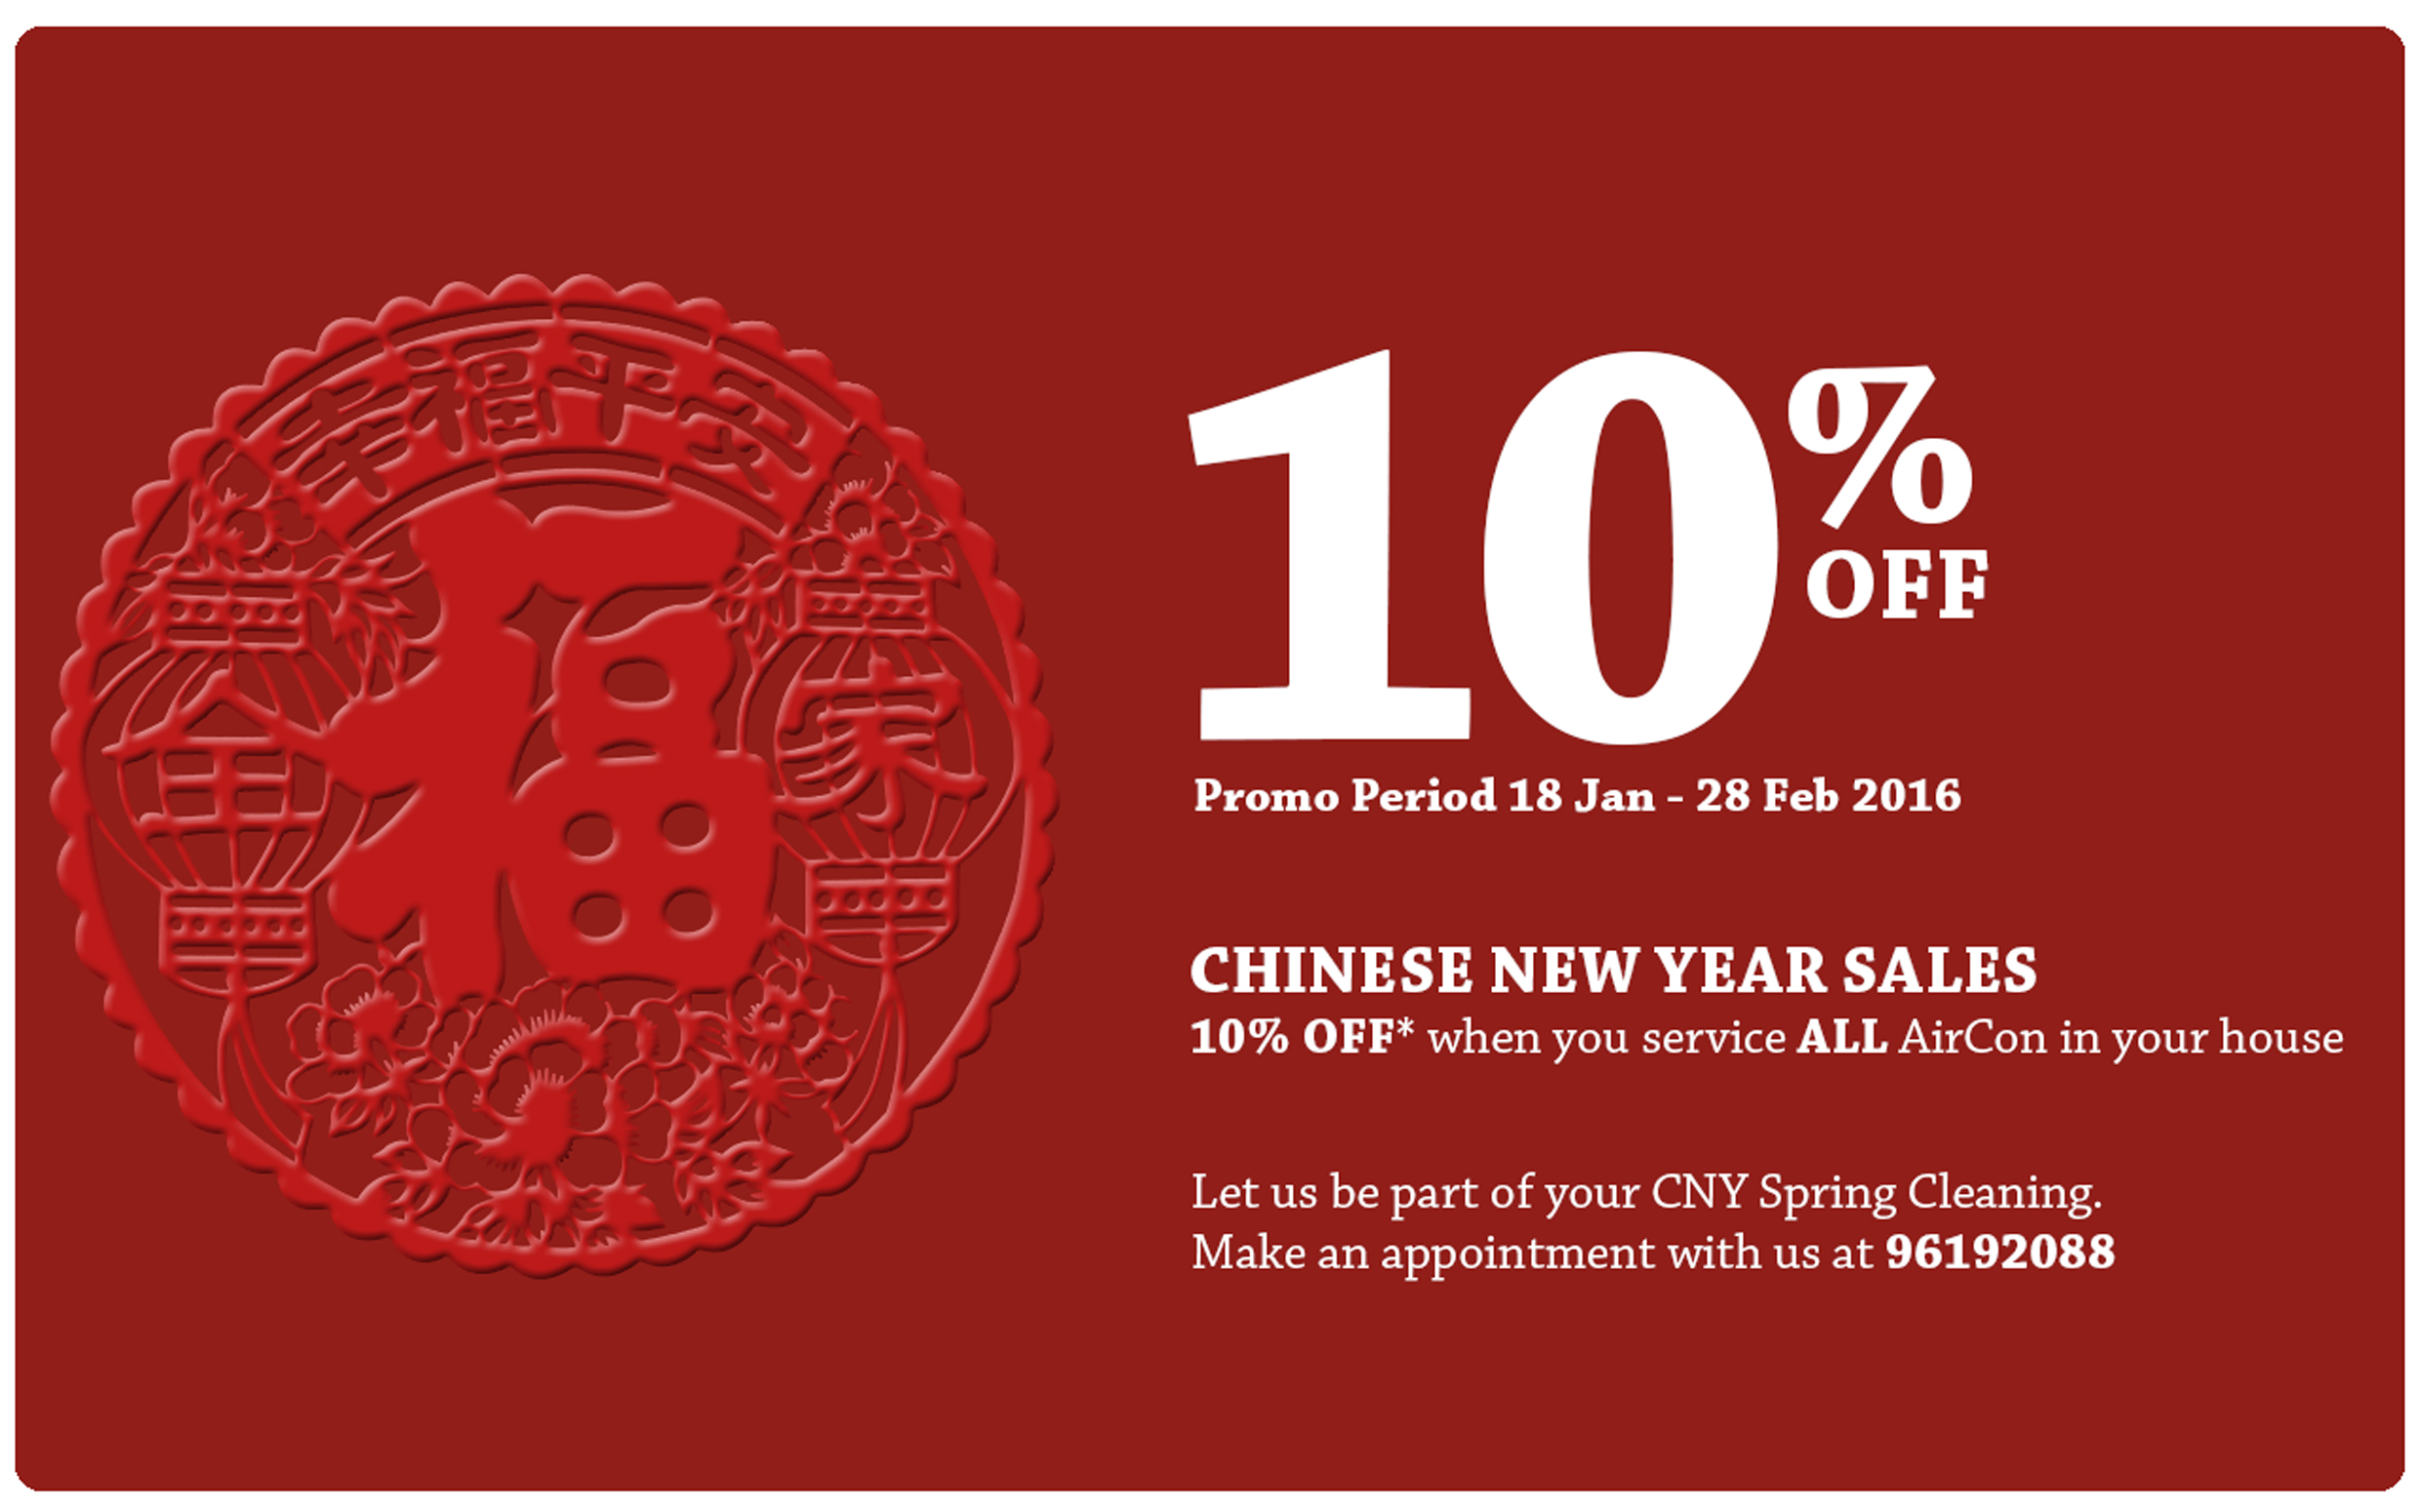 Chinese New Year 2016 Air Con Promotion